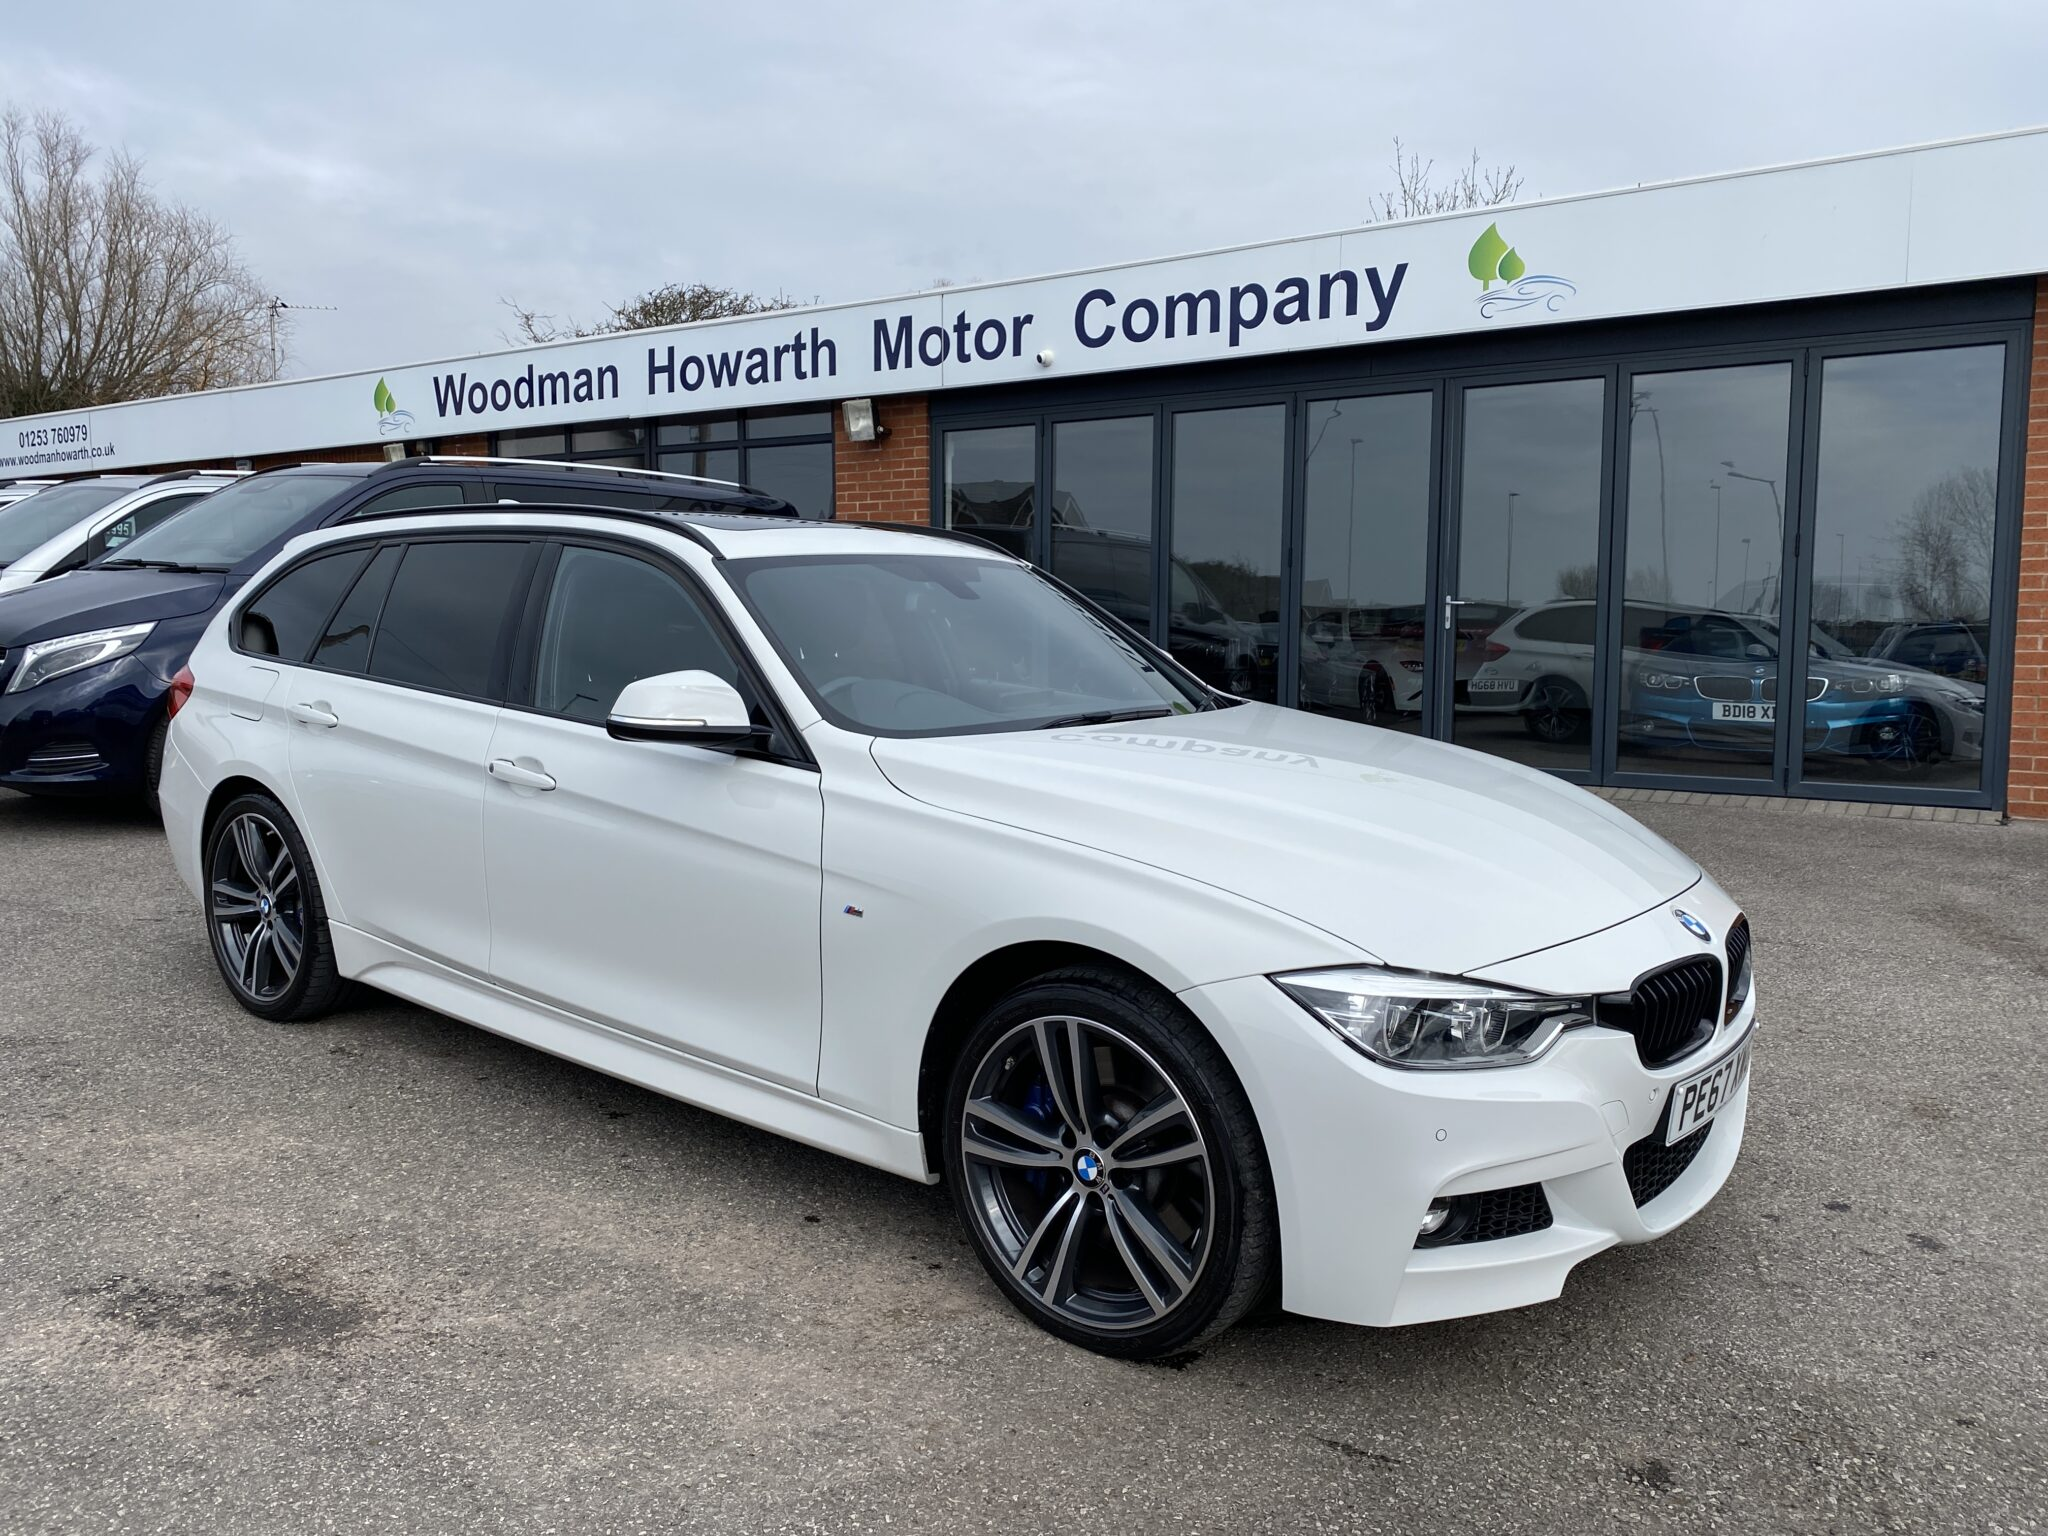 2017 67 BMW 335D XDRIVE M SPORT TOURING AUTOMATIC One Owner Pan Roof Only 18K Mls